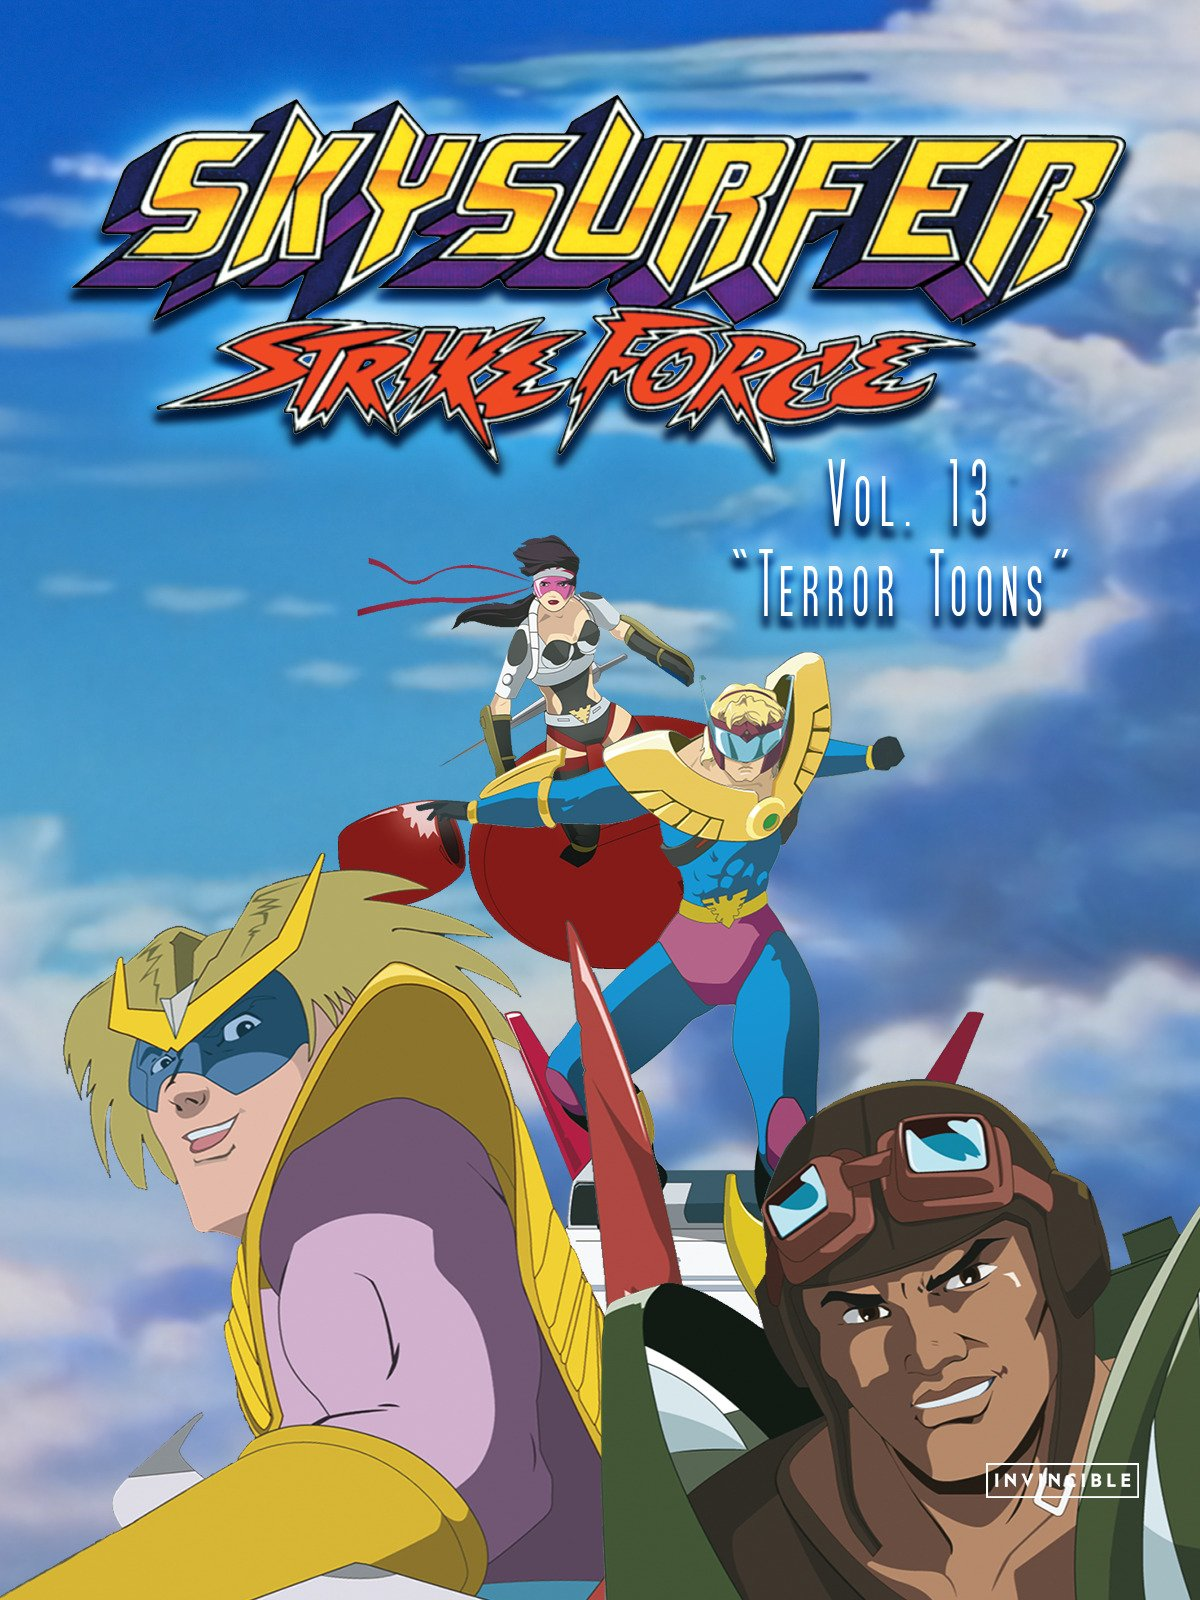 Skysurfer Strike Force Vol. 13Terror Toons on Amazon Prime Video UK